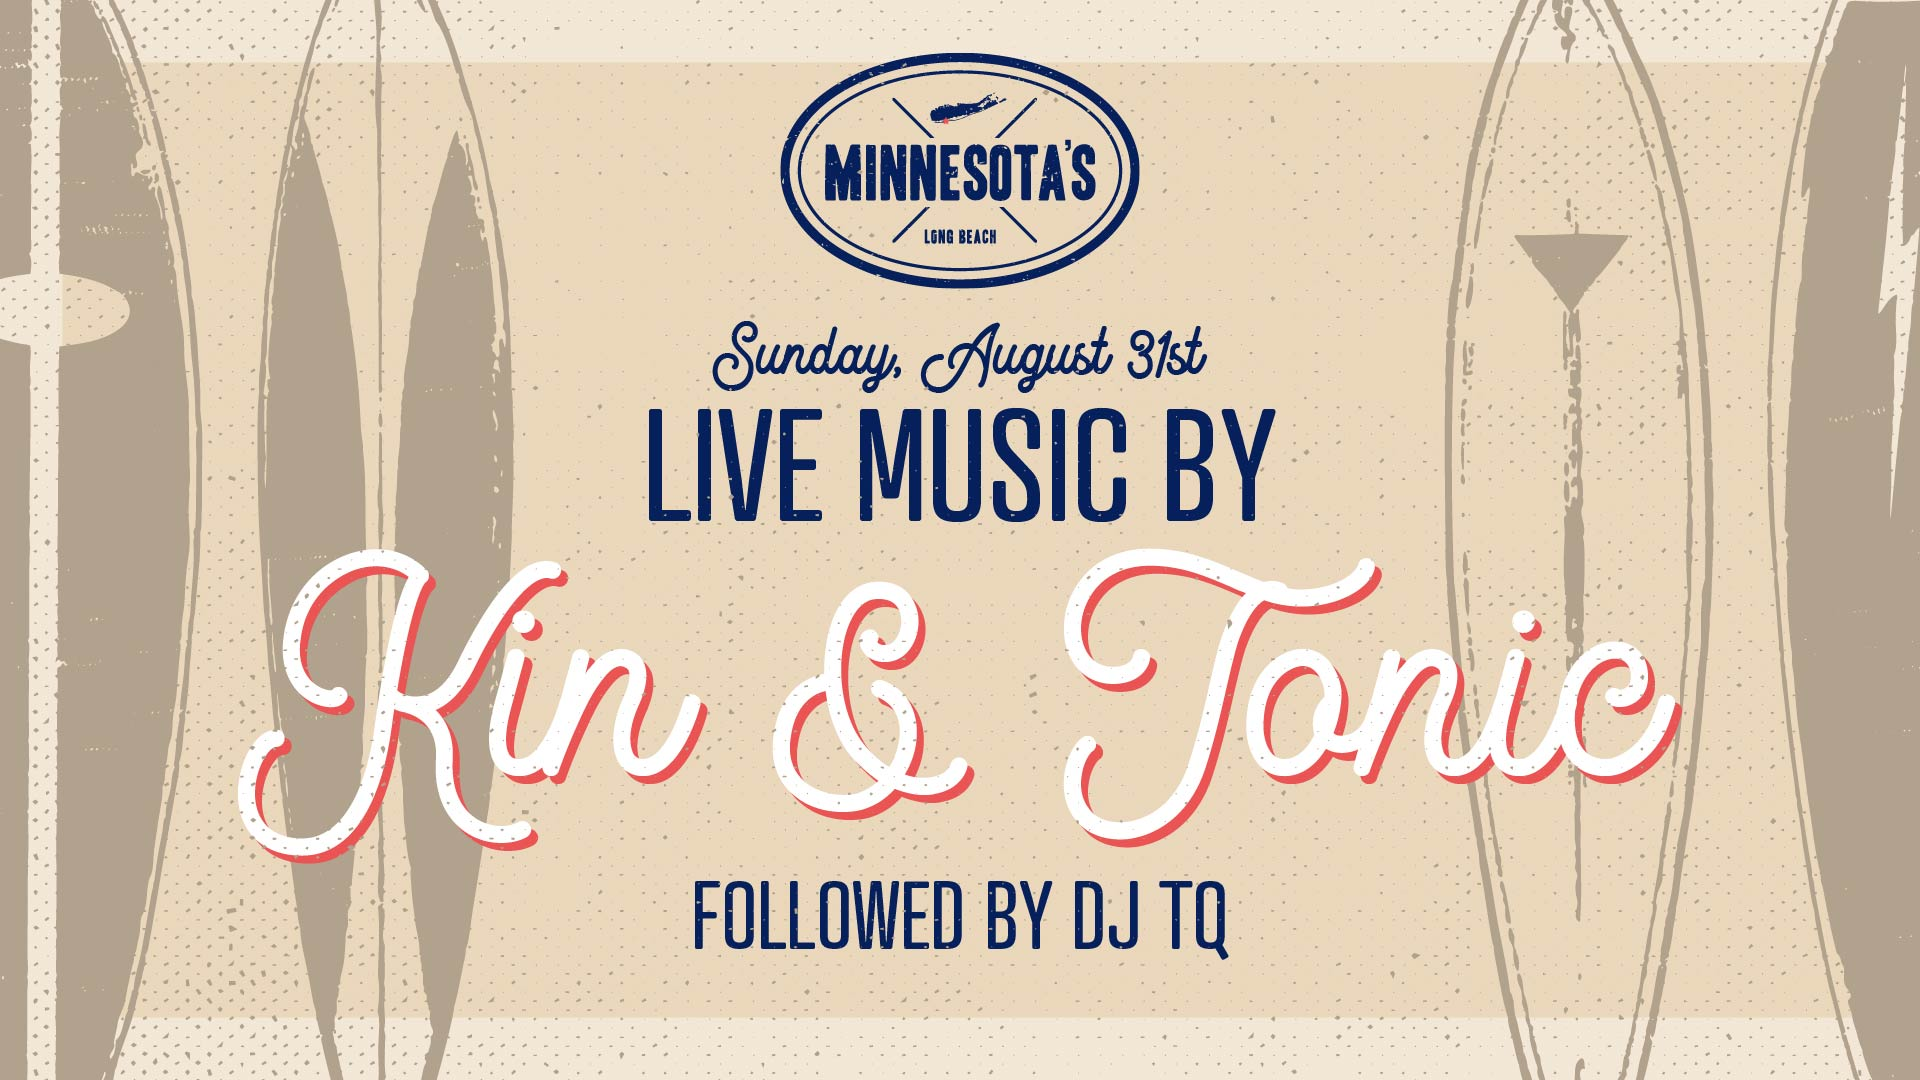 flyer for live music by kin and tonic followed by dj tq at minnesotas on august 31st at 6pm